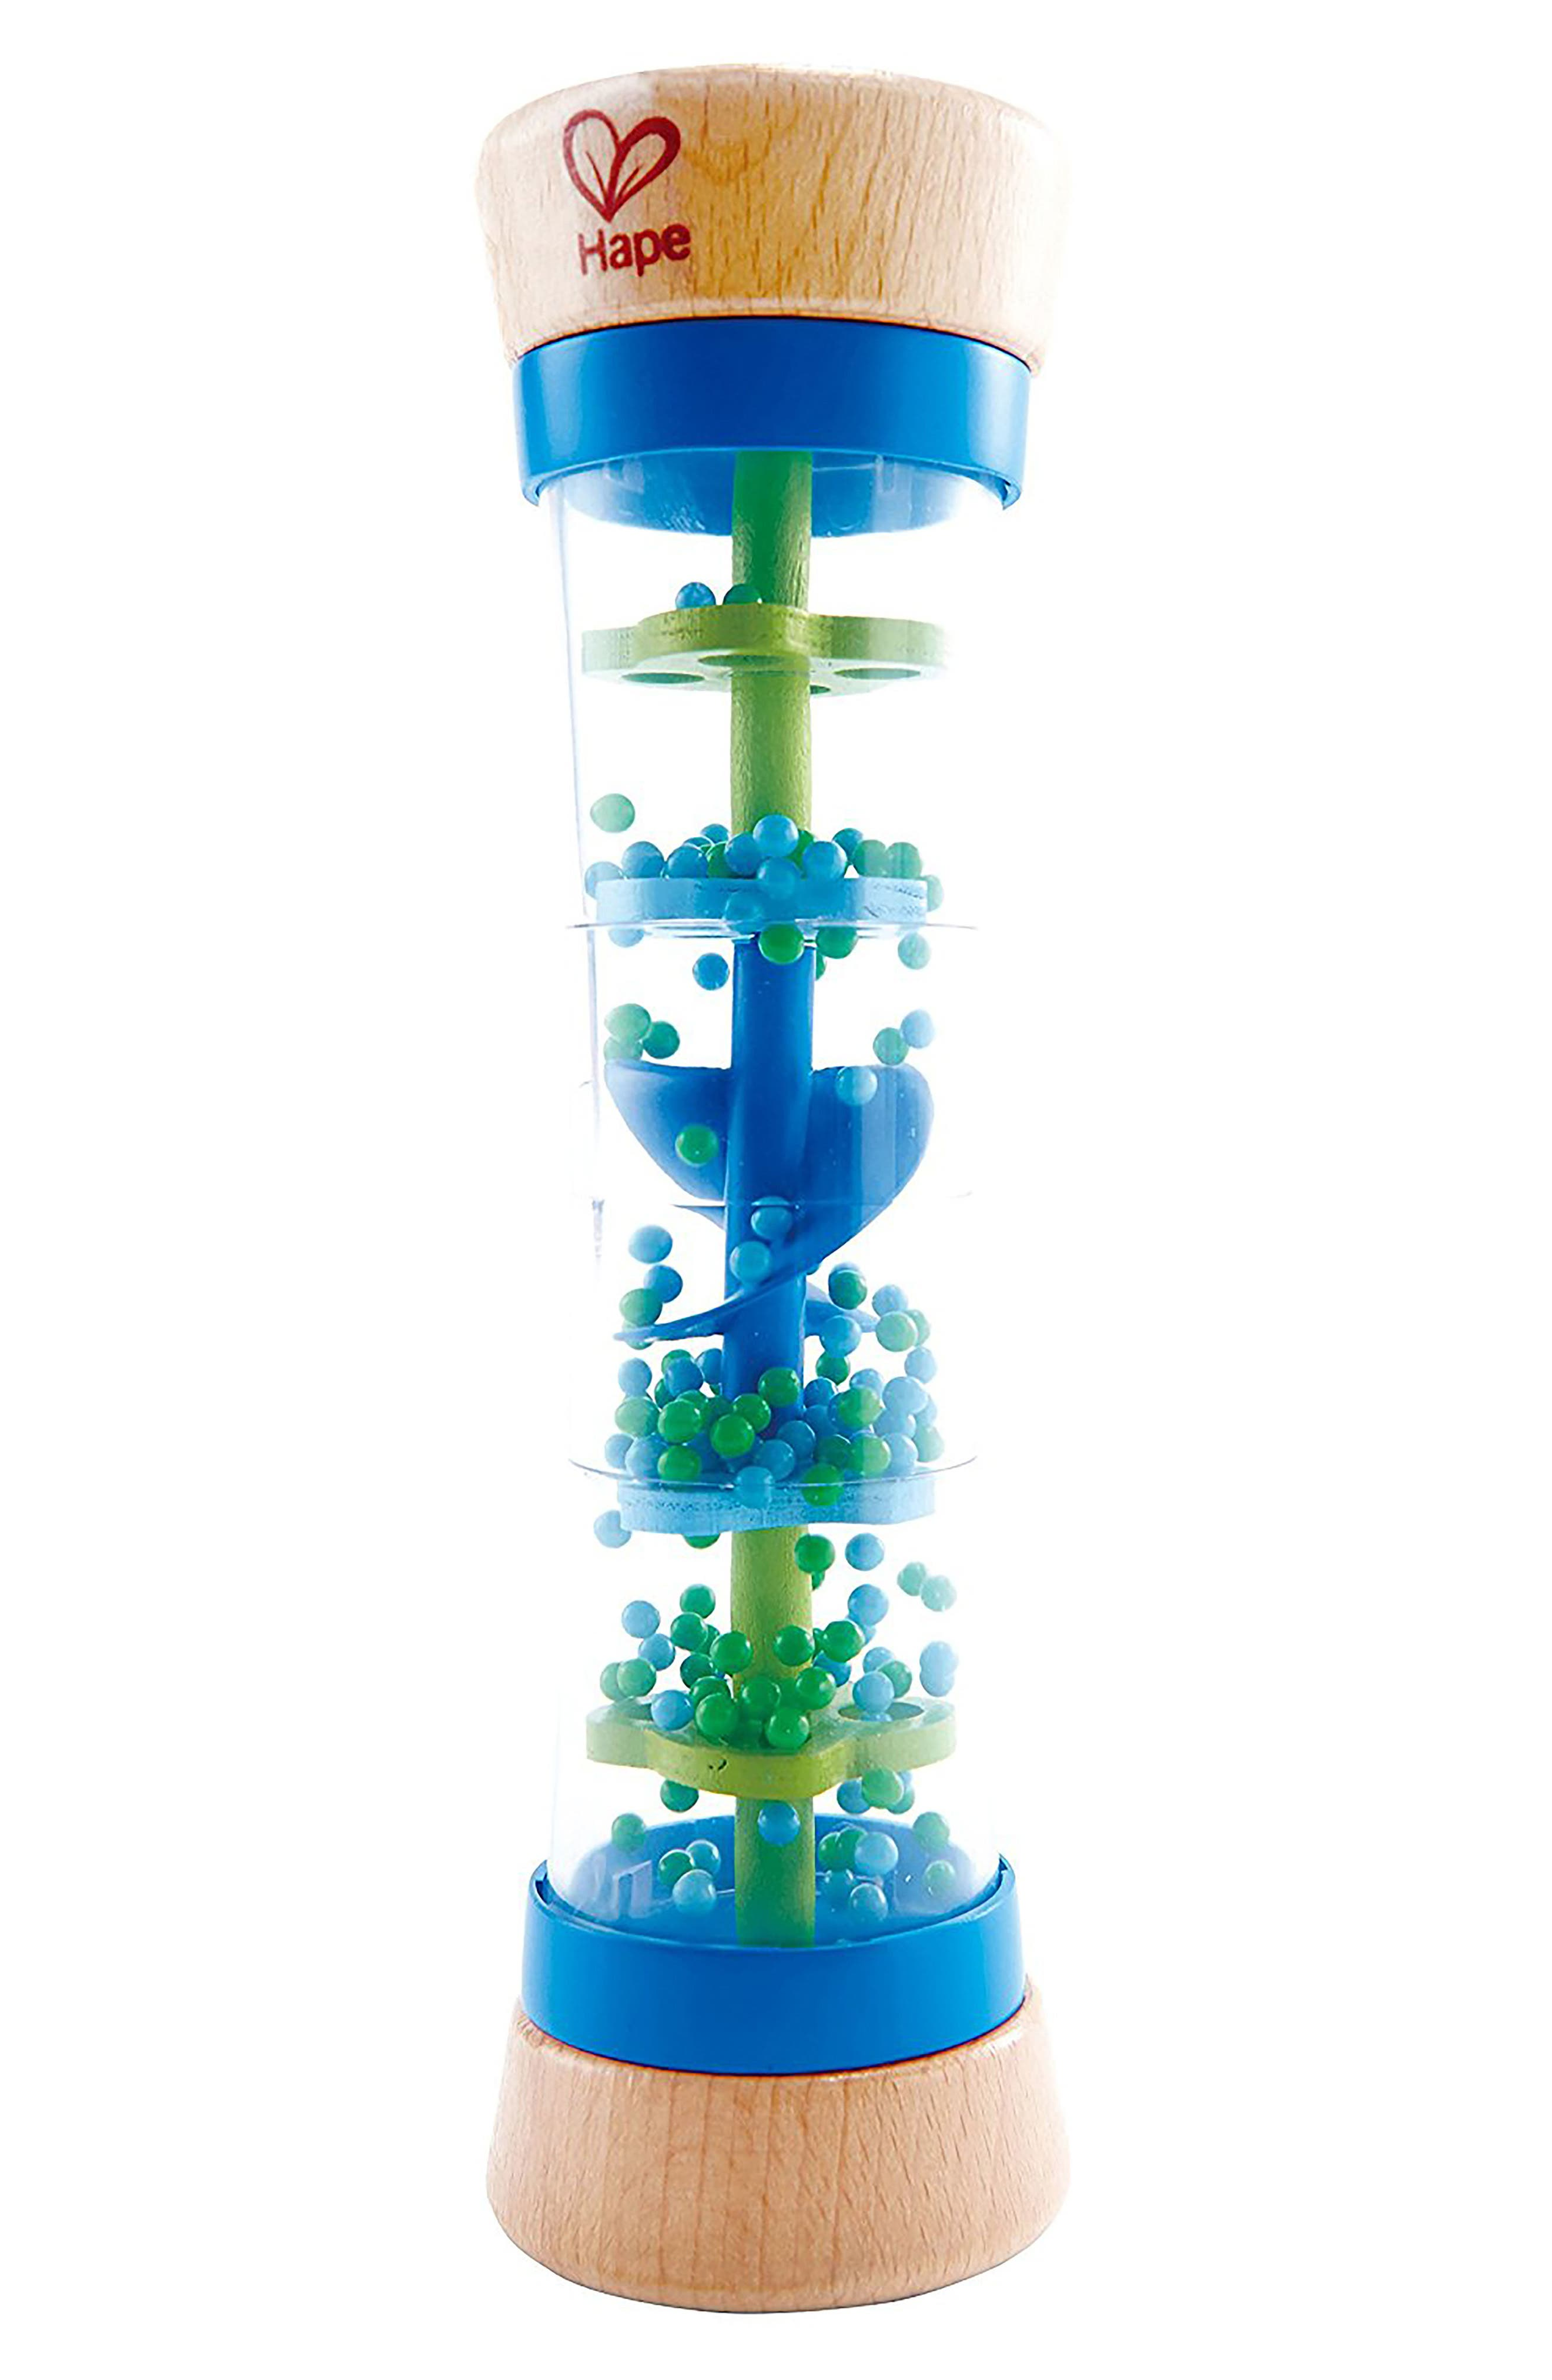 Hape Beaded Rain Maker